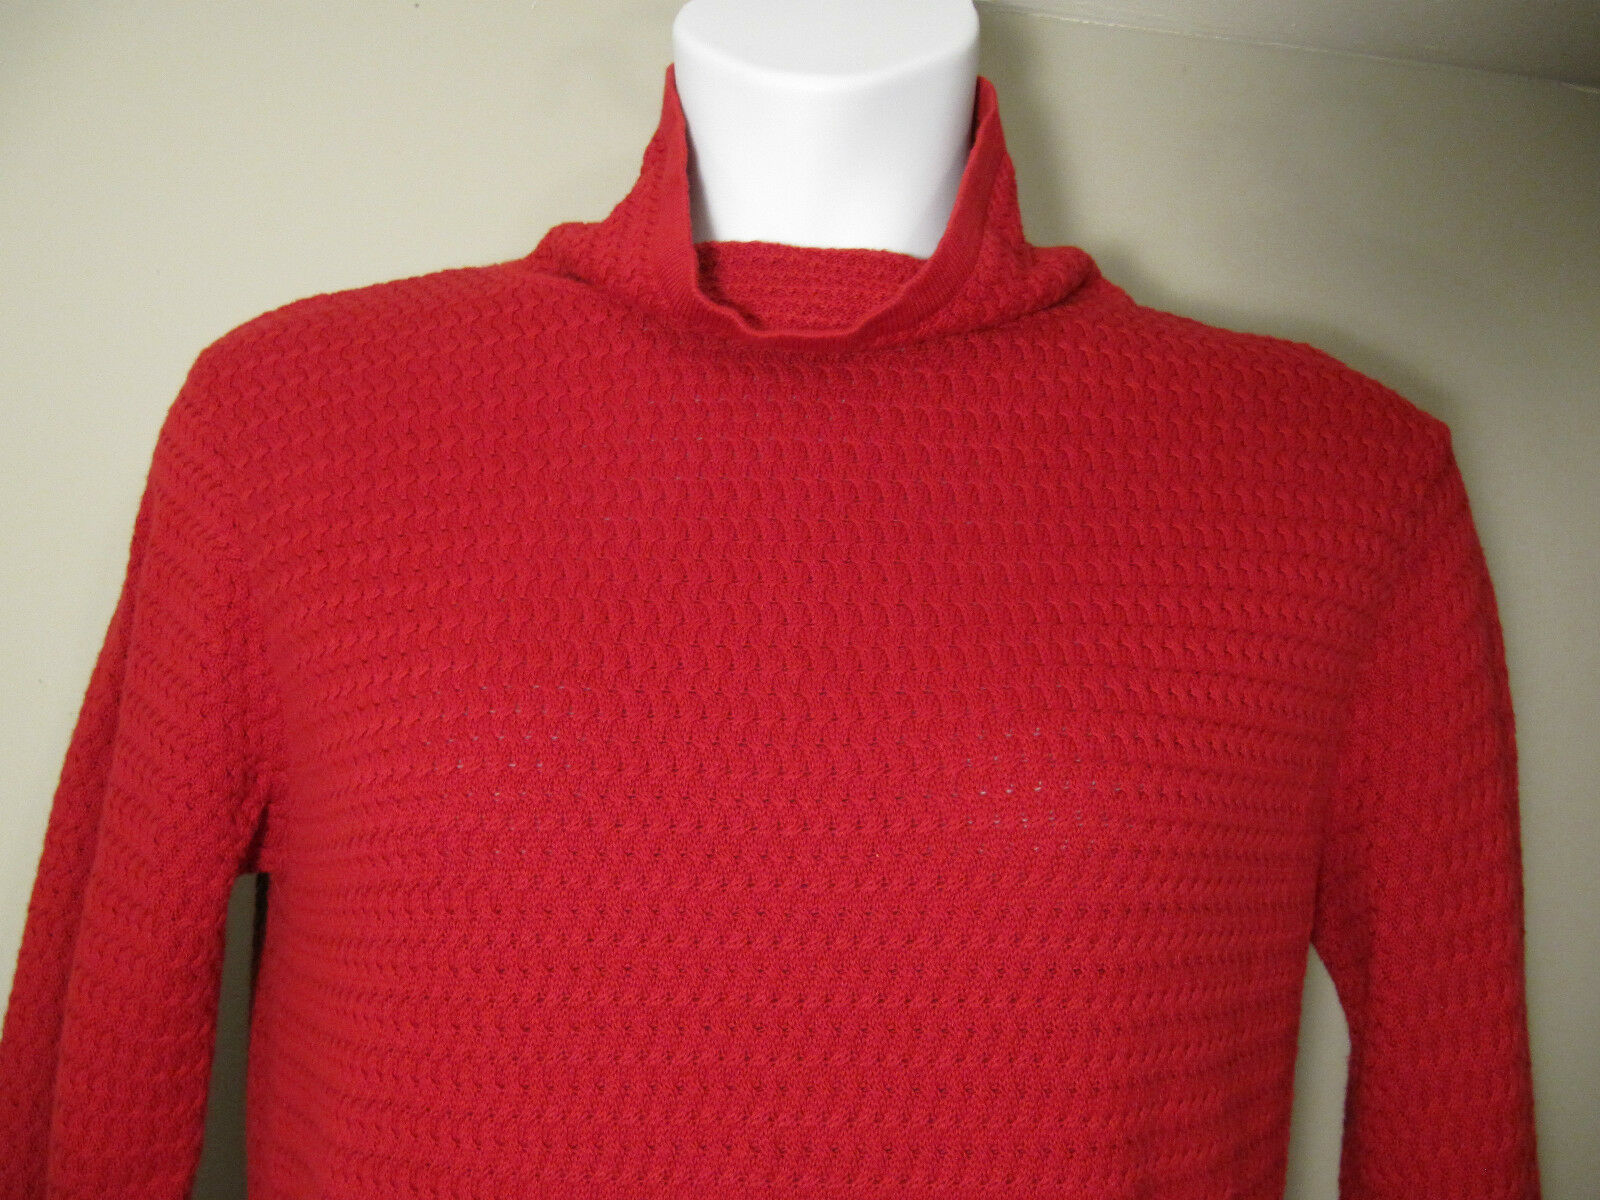 COLDWATER CREEK Women's Red Long Sleeve Sweater Size M Cotton ...